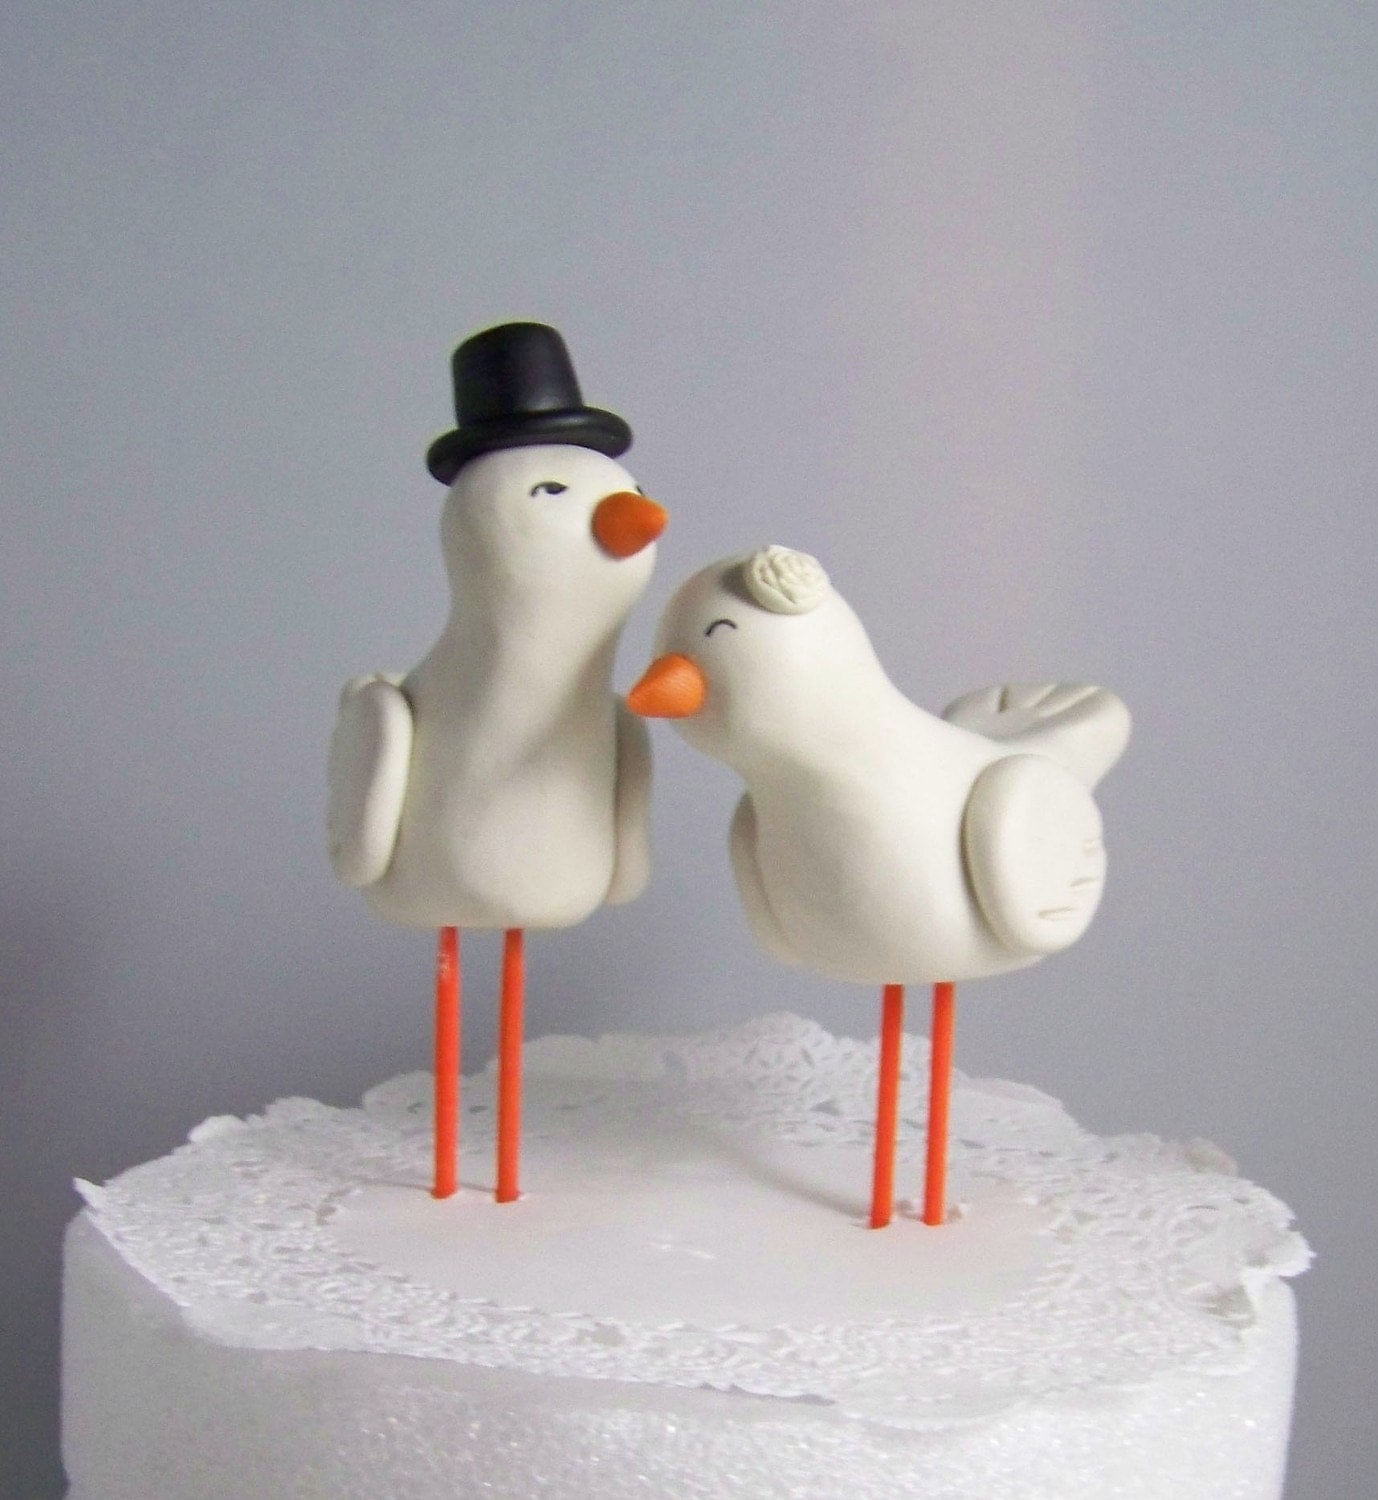 Large High Fashion Nuzzling Love Birds Cake Topper Hand Sculpted Your Choice of Colors